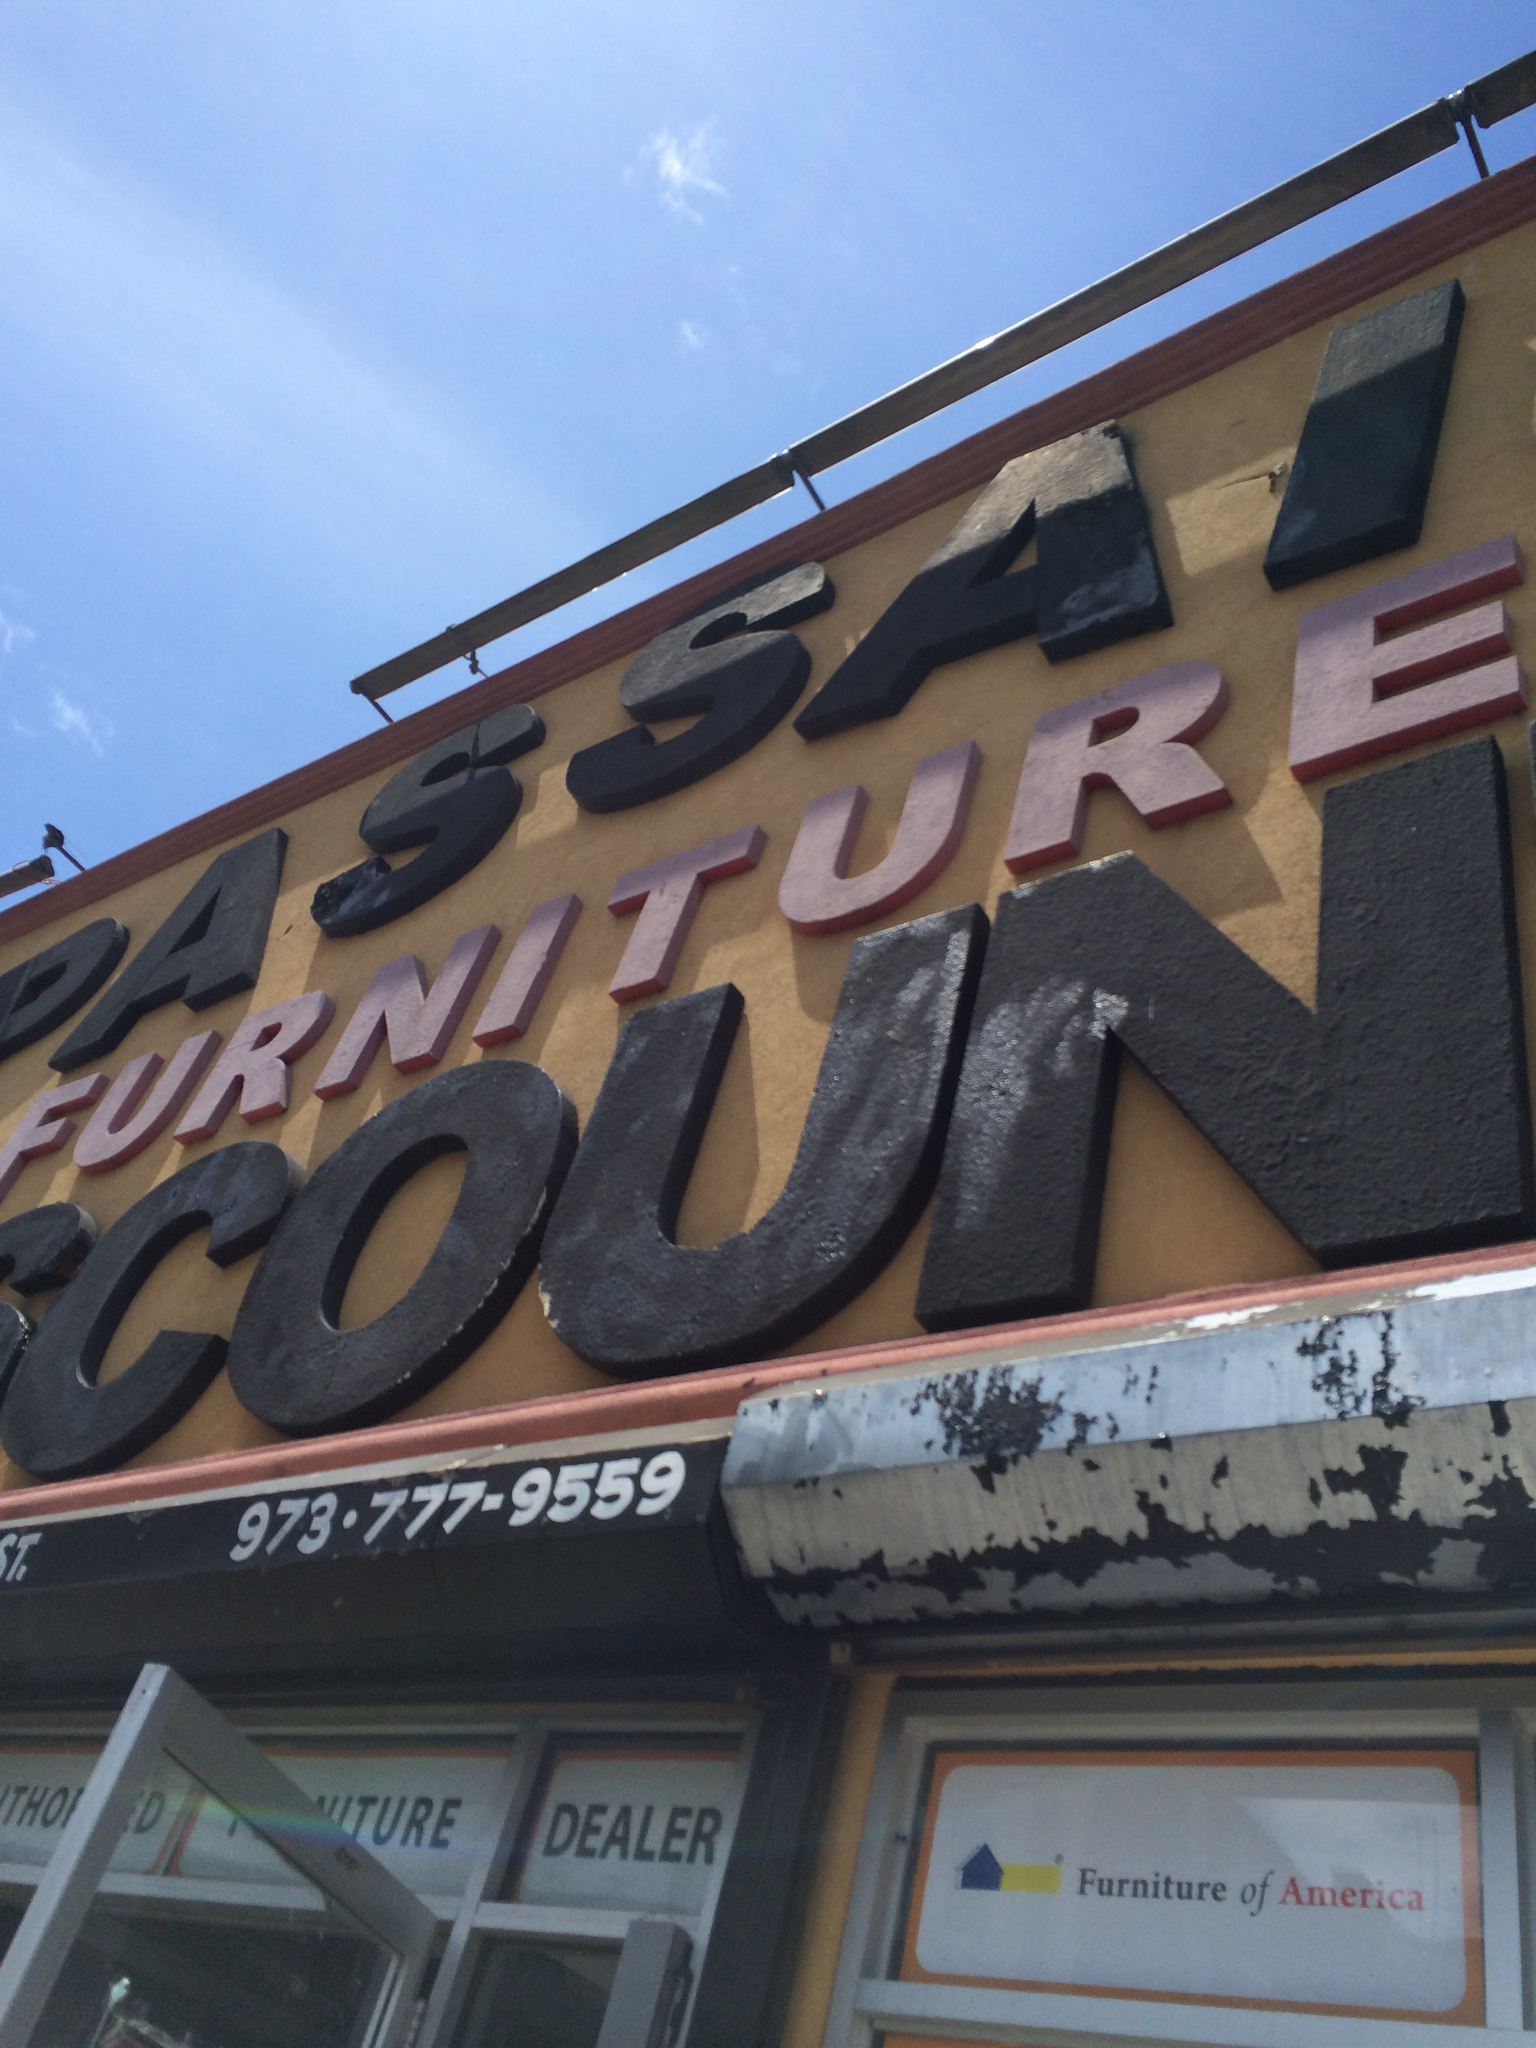 Passaic Discount Furniture 202 Jefferson St Passaic Nj 07055 Yp Com